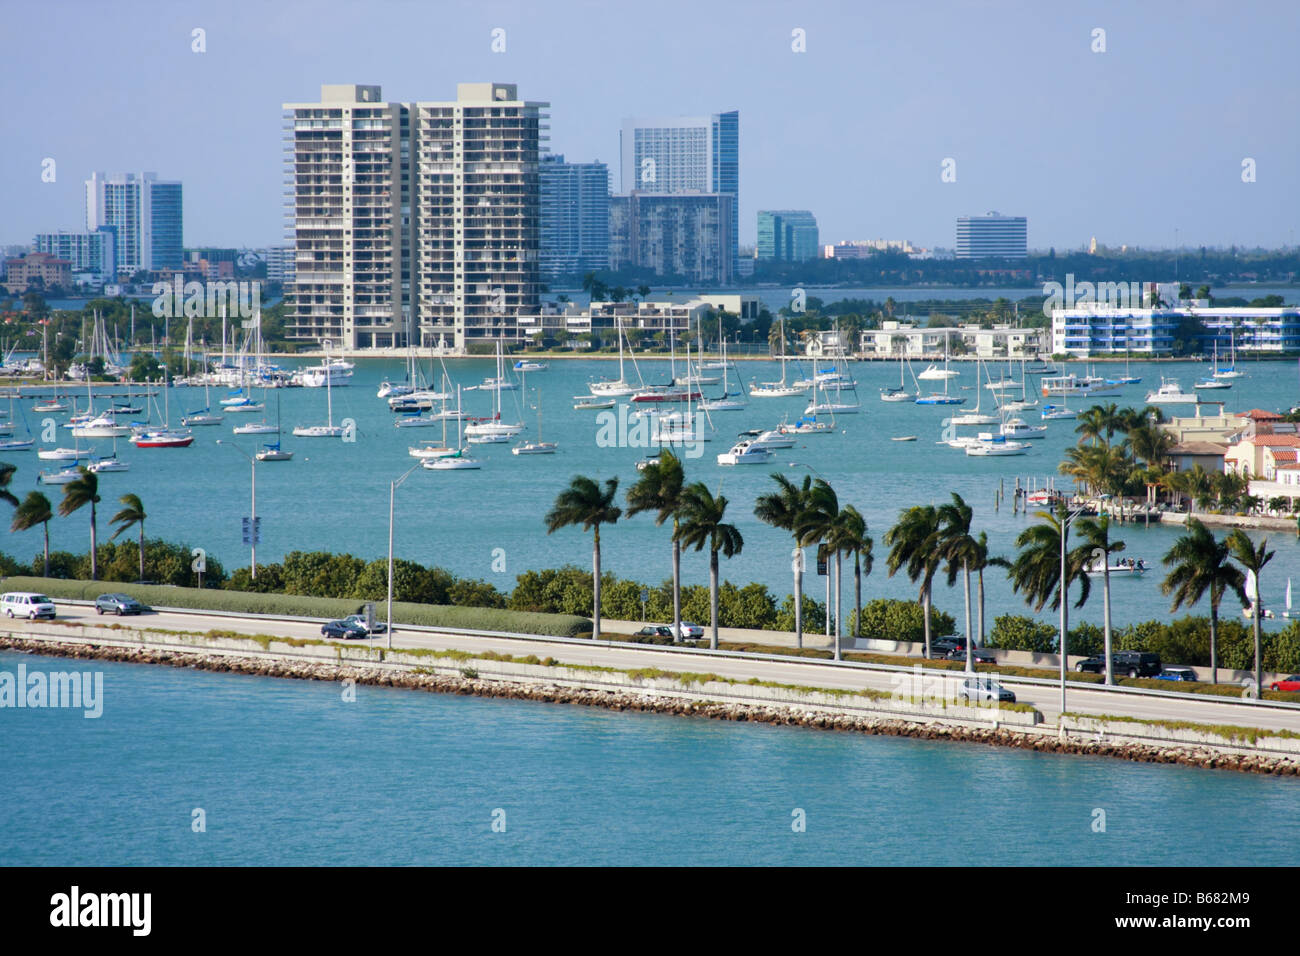 Biscayne Bay full of sailboats in Miami. - Stock Image